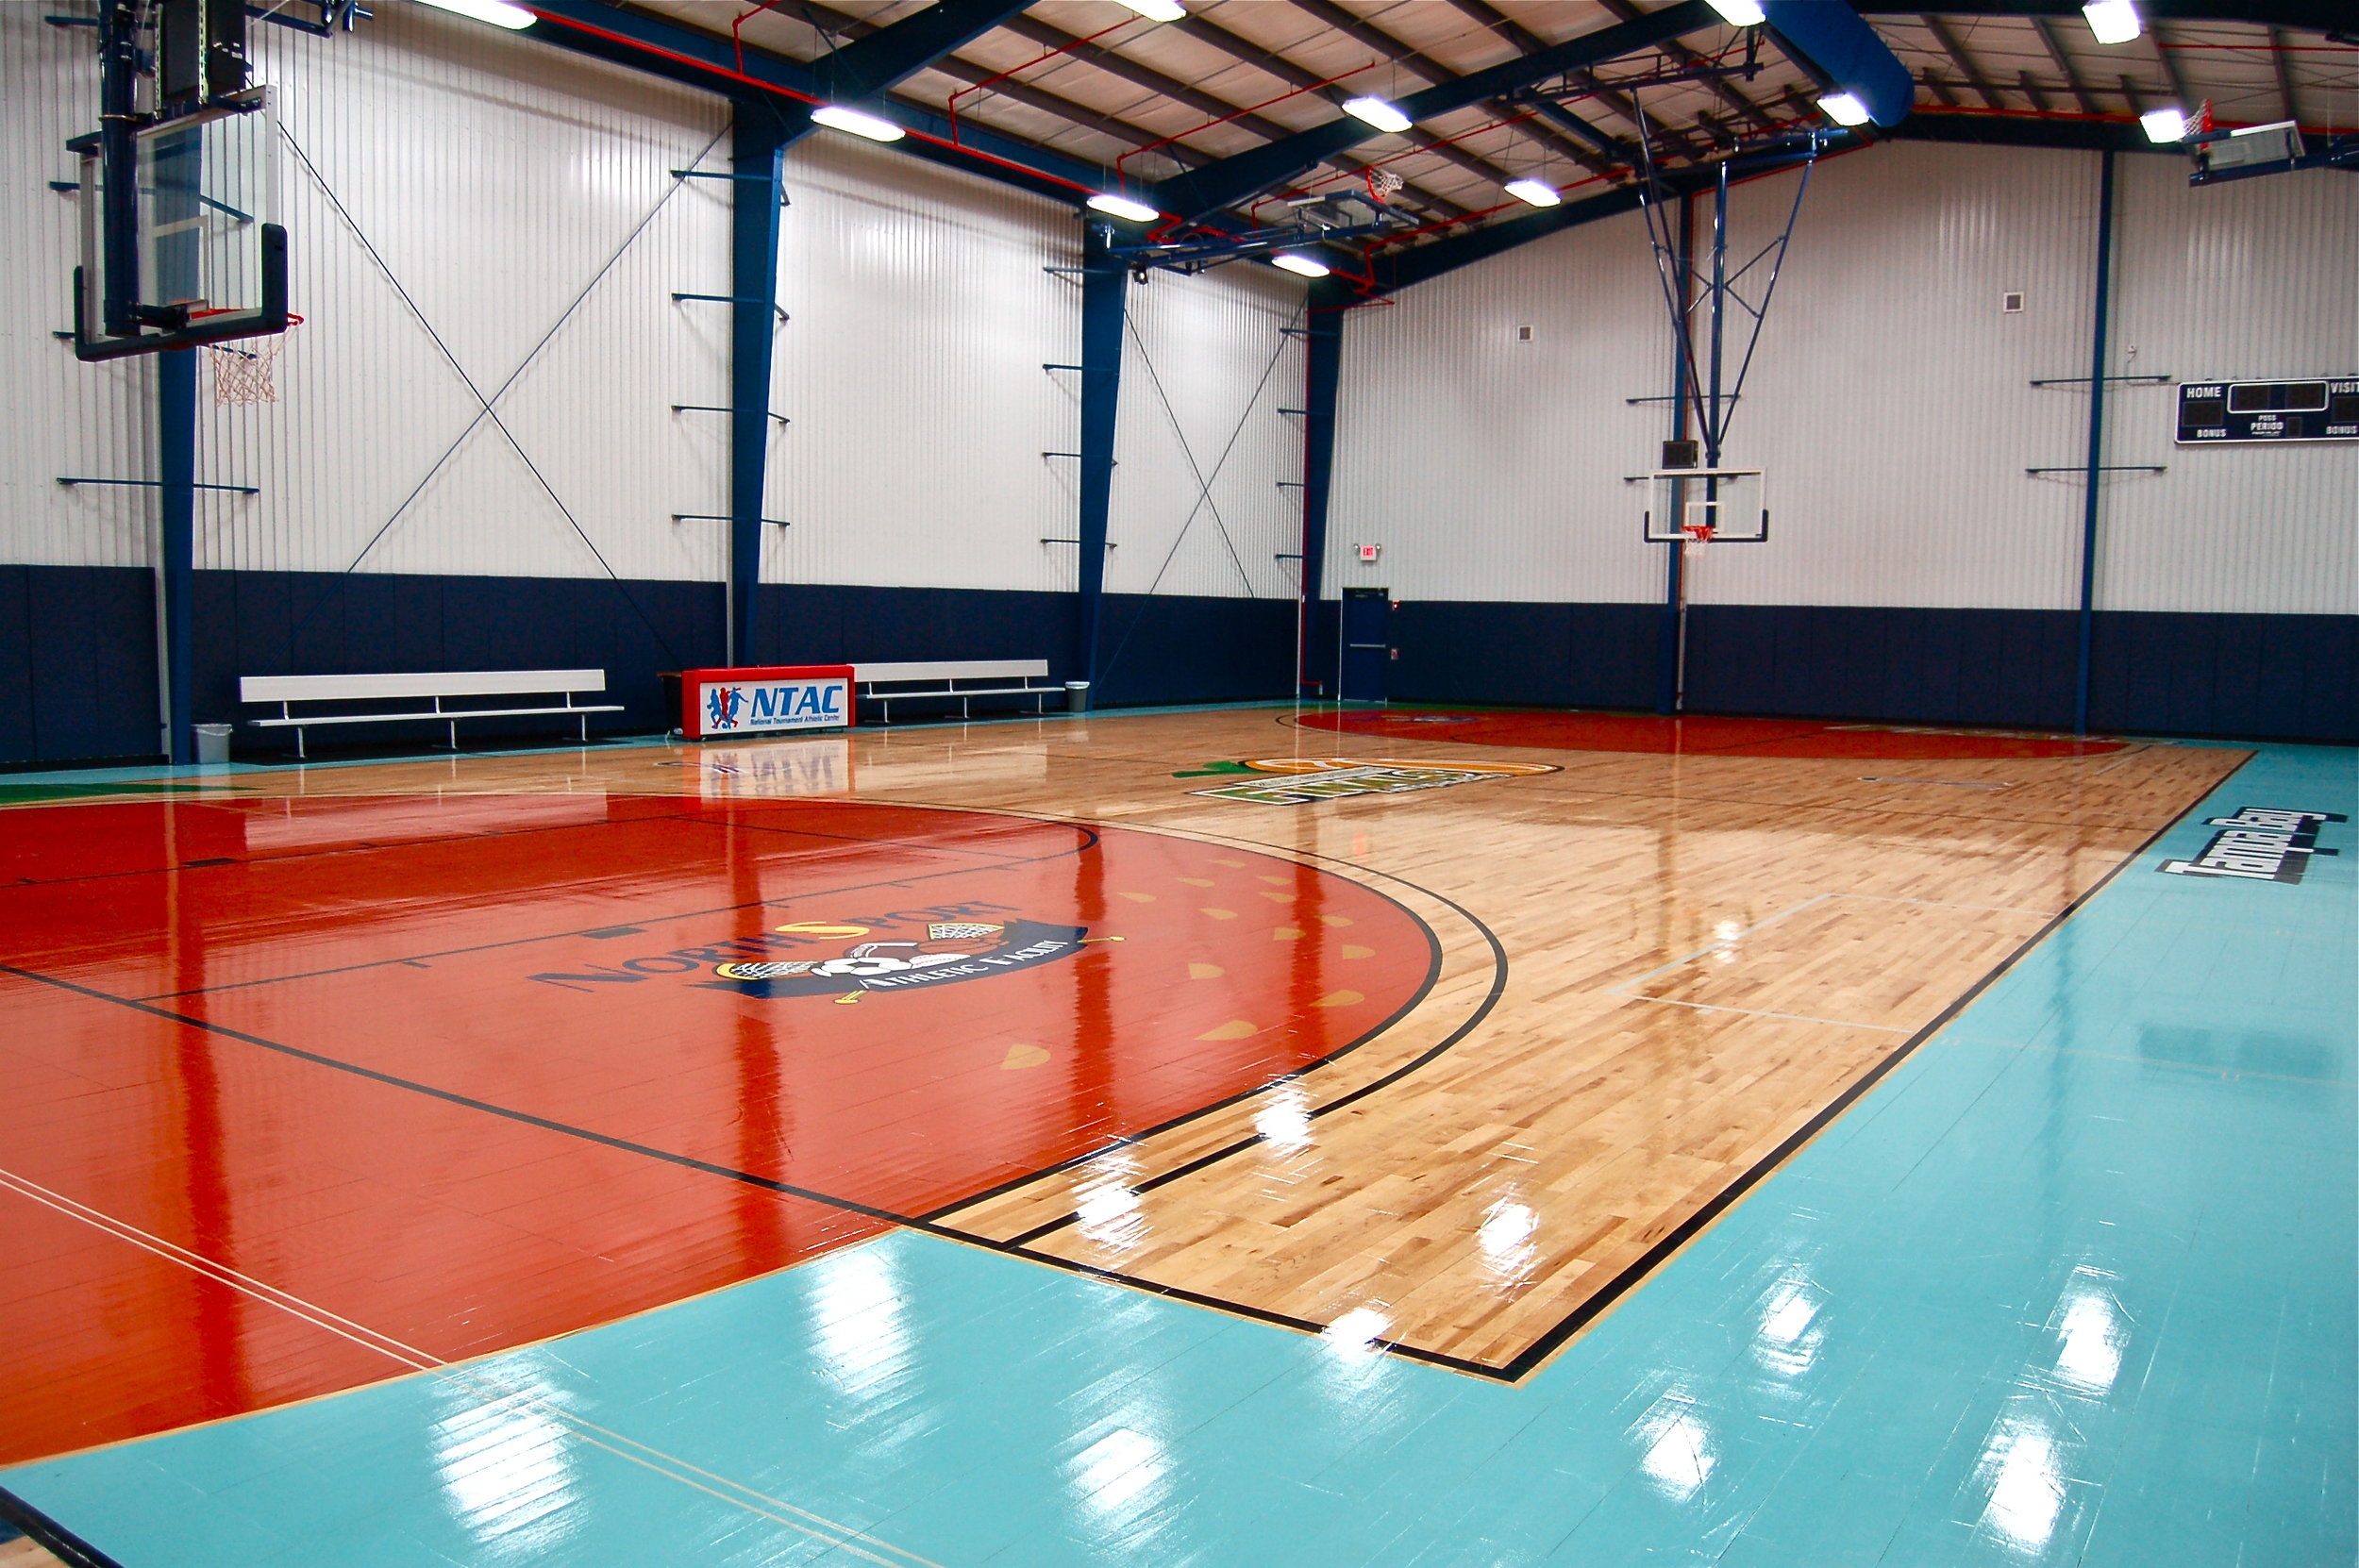 """TAMPA BAY"" COURT VIEW"